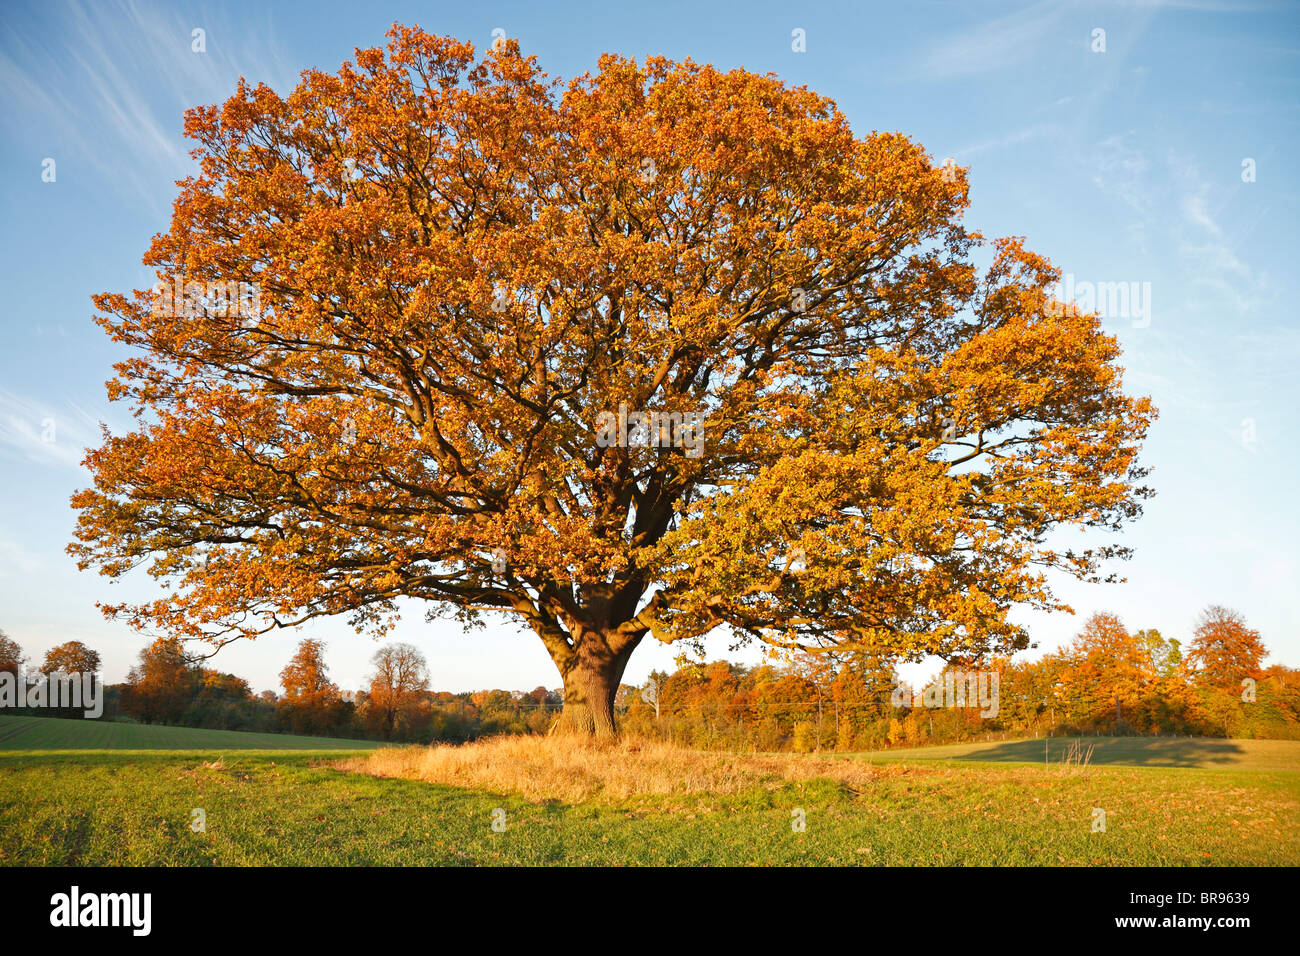 Big, old oak tree, common oak, English oak, Quercus robur, on field with fall brown coloured leaves in autumn sunset, Stock Photo